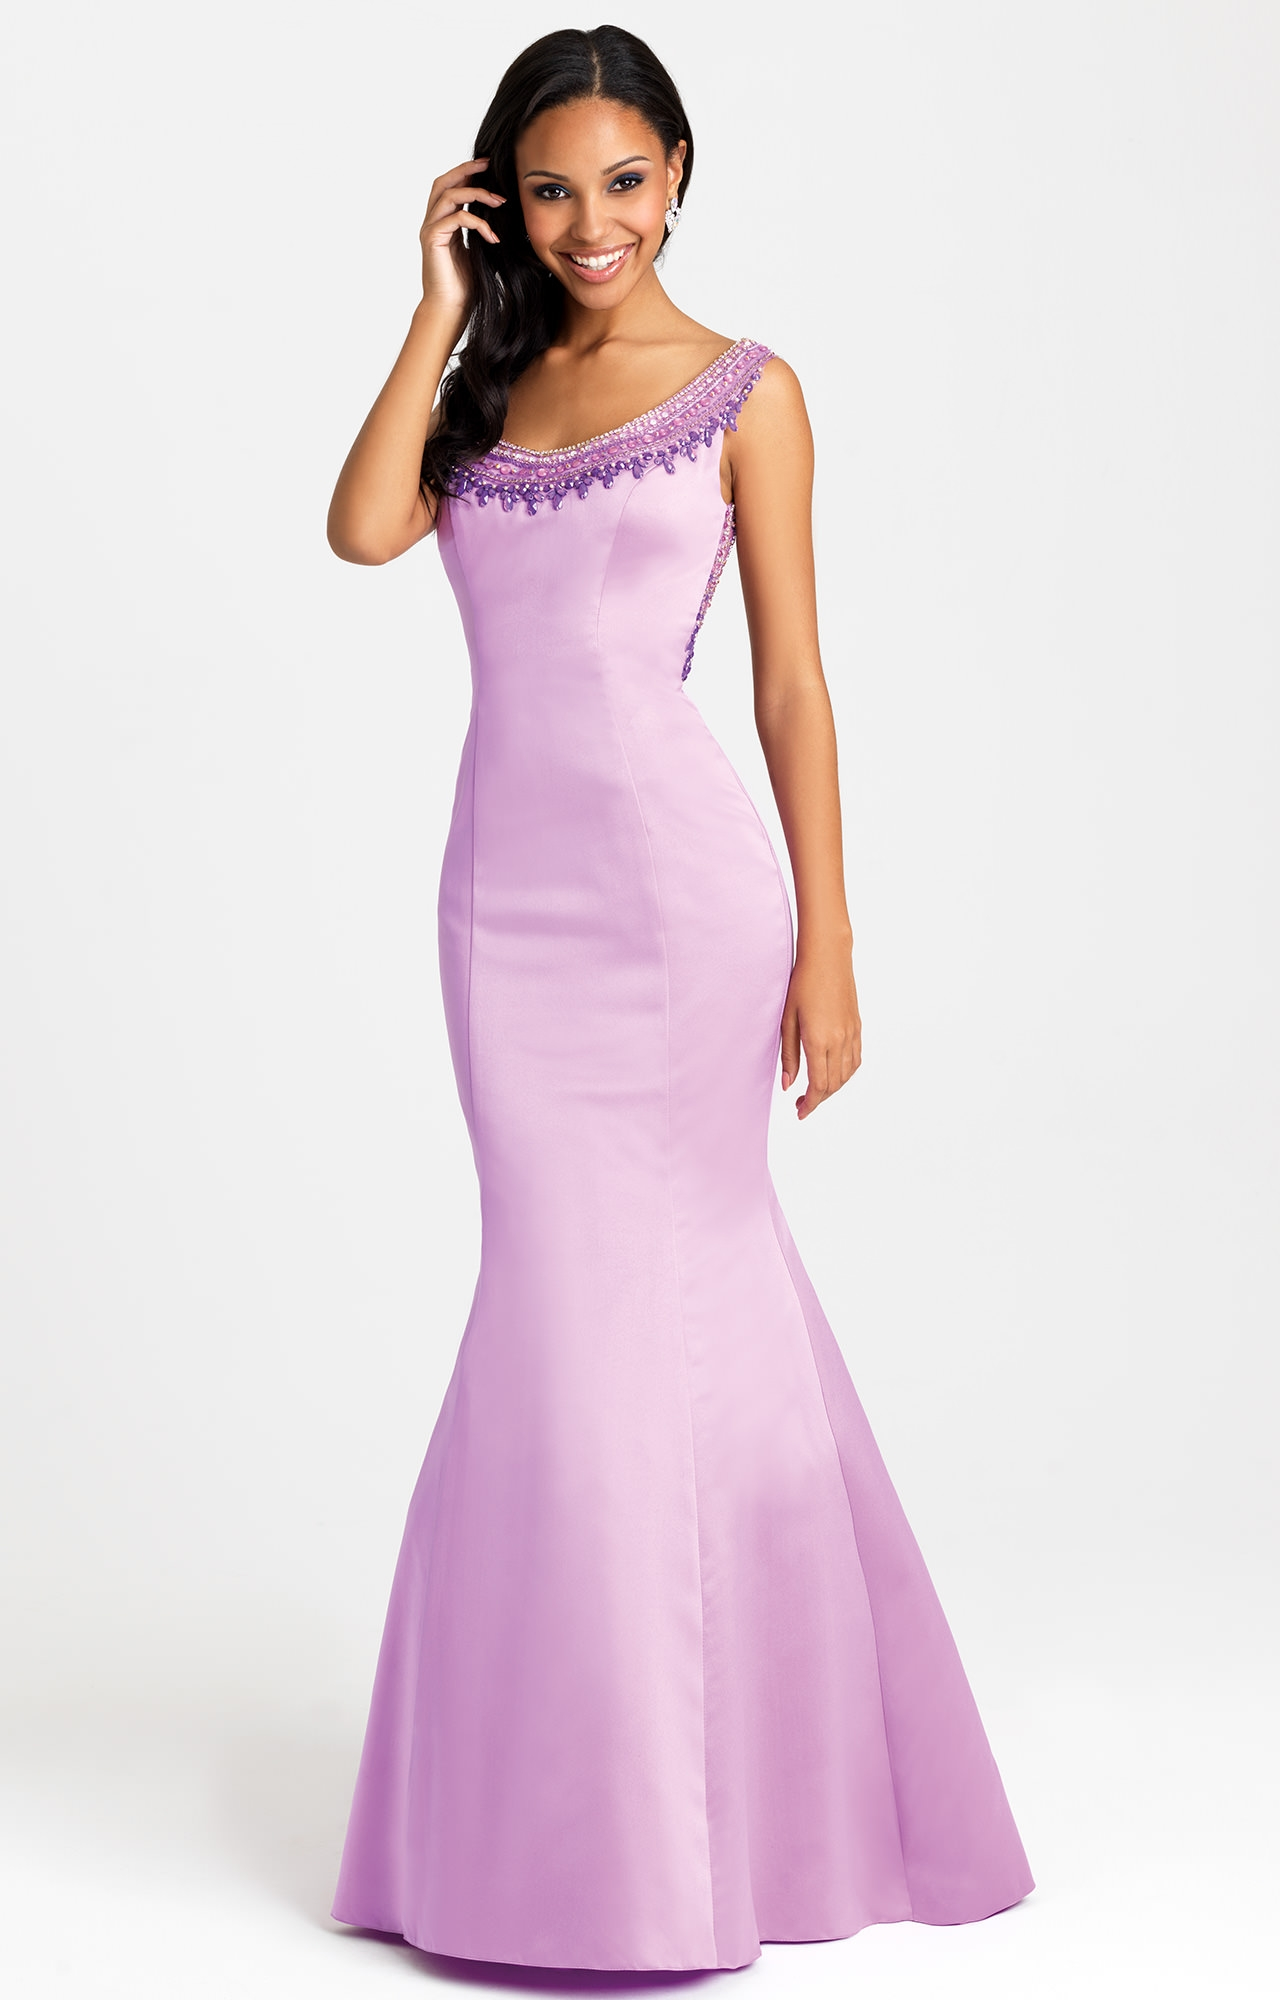 Madison James 16-317 - A Night in Paris Gown Prom Dress